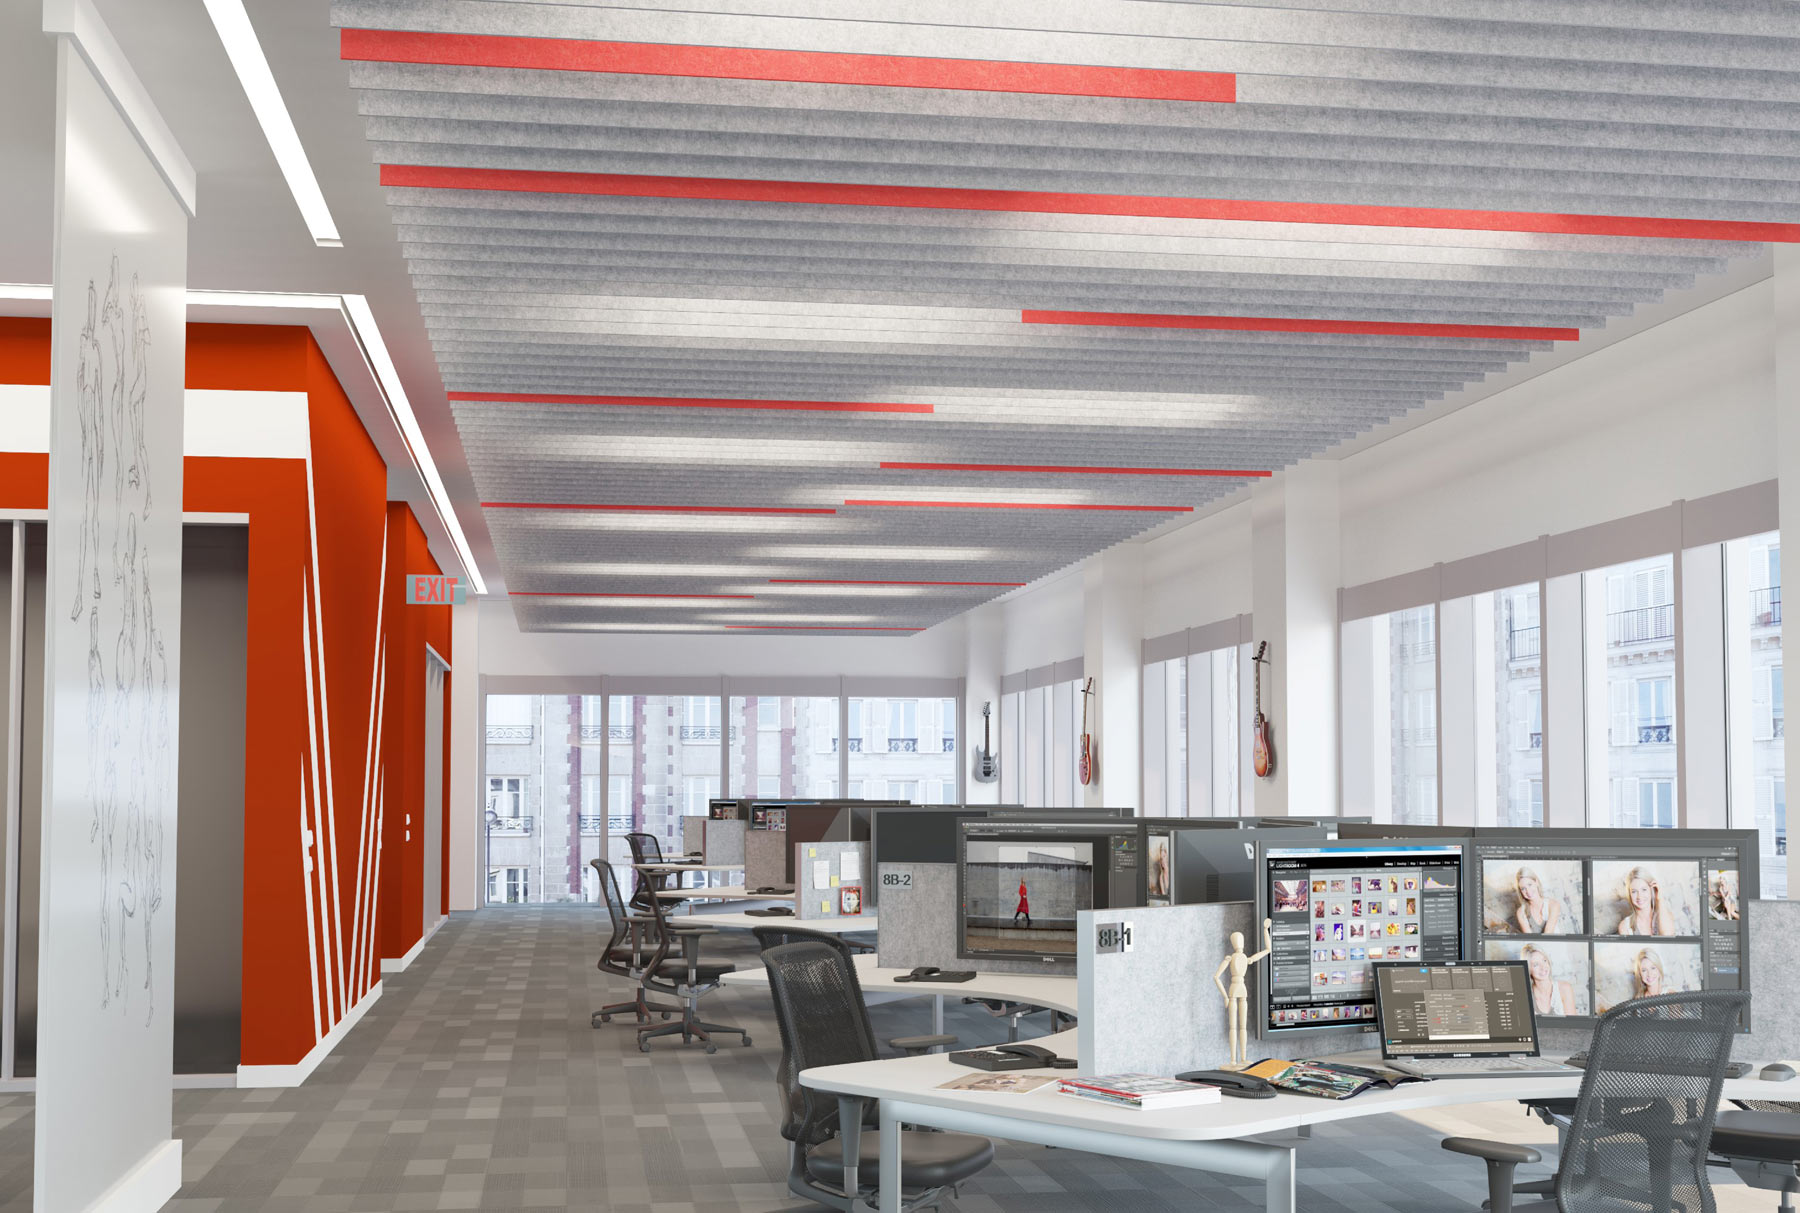 SoftGrid® Square acoustical system installed in office.